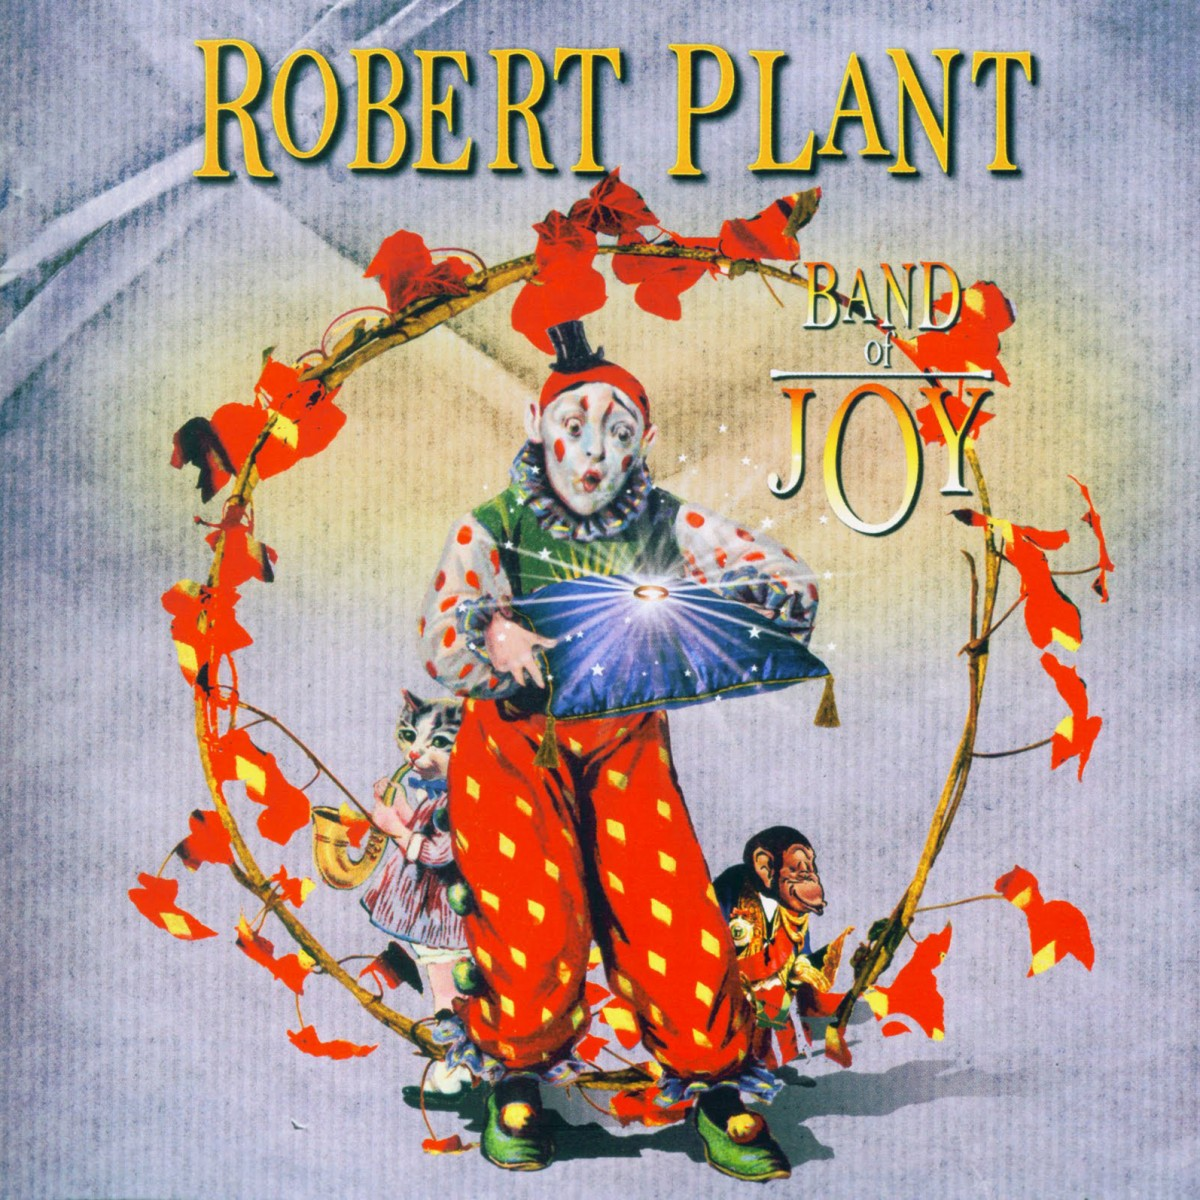 Plant, Robert: Band of Joy (2010)